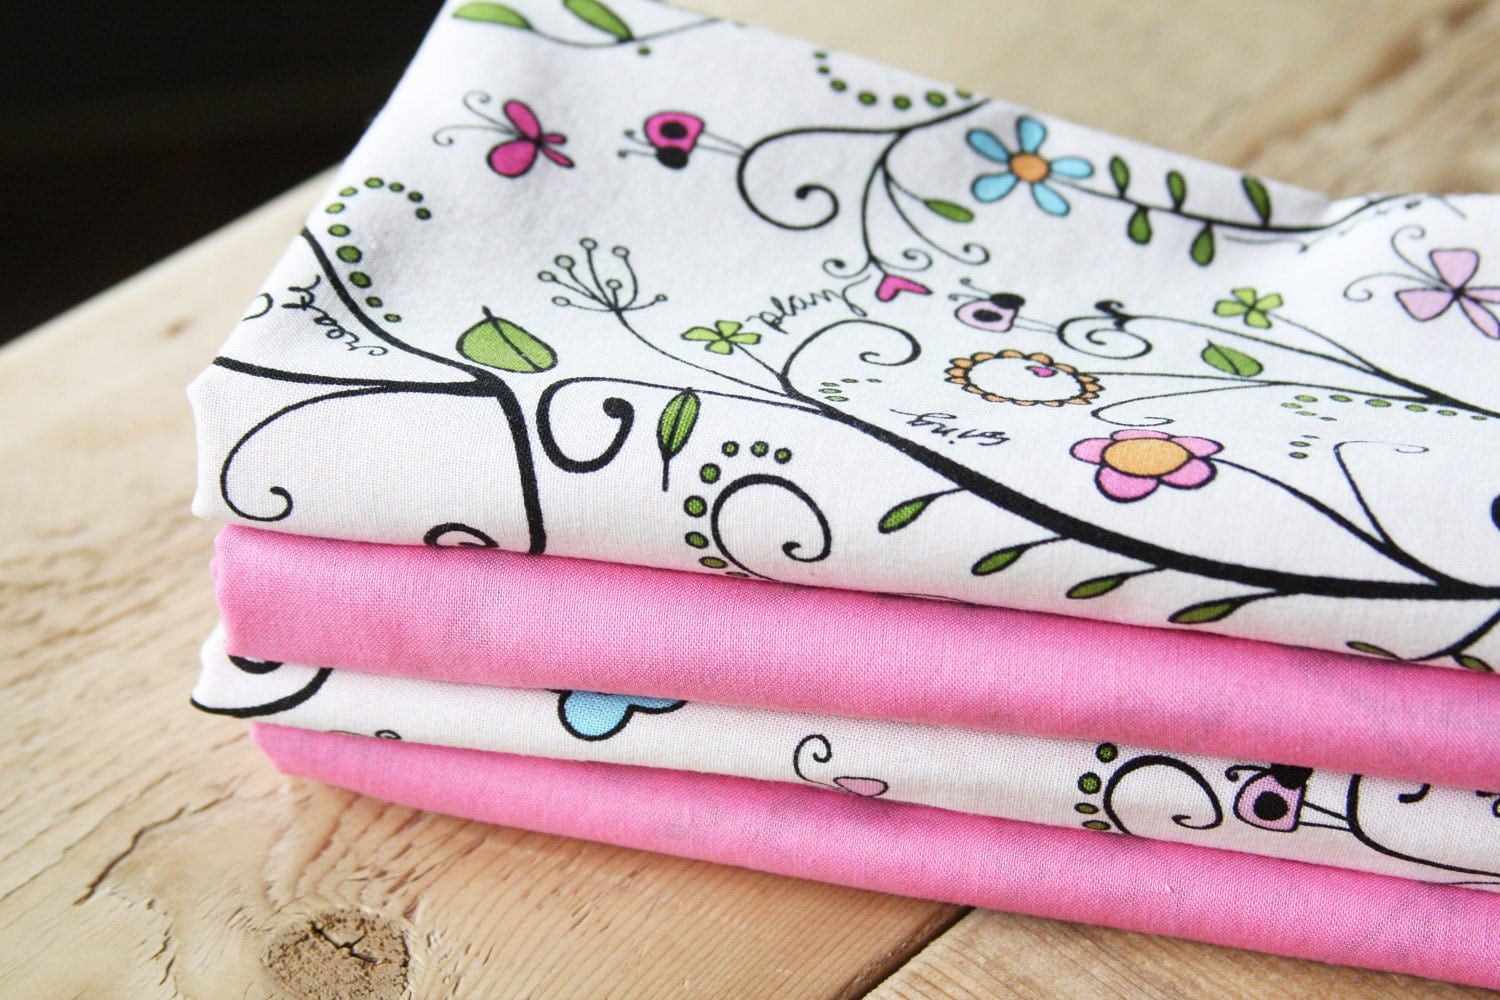 Fabric Napkins - Pink with Floral Vines - Set of 4 Reversible Cloth